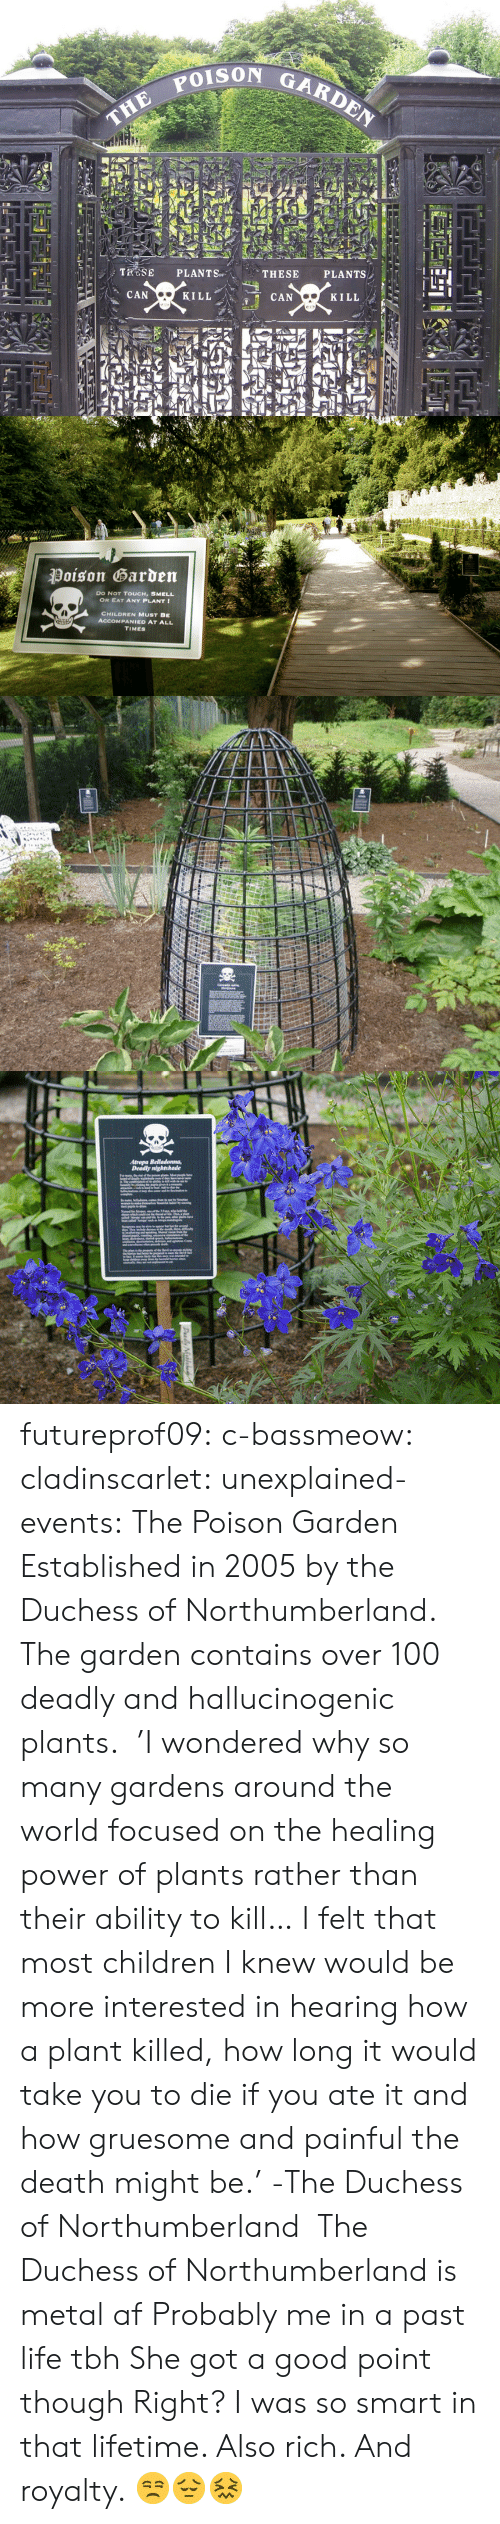 Metal Af: THE POIs  TROSE PLANTS  CAN  THESE PLANTS,  KILL  CAN  KILL   Poison Garden  DO NoT TOUCH, SMELL  OR EAT ANY PLANT  CHILDREN MUST BE  TIMES futureprof09:  c-bassmeow:  cladinscarlet:  unexplained-events:  The Poison Garden Established in 2005 by the Duchess of Northumberland. The garden contains over 100 deadly and hallucinogenic plants.   'I wondered why so many gardens around the world focused on the healing power of plants rather than their ability to kill… I felt that most children I knew would be more interested in hearing how a plant killed, how long it would take you to die if you ate it and how gruesome and painful the death might be.'   -The Duchess of Northumberland  The Duchess of Northumberland is metal af   Probably me in a past life tbh  She got a good point though  Right? I was so smart in that lifetime. Also rich. And royalty. 😒😔😖